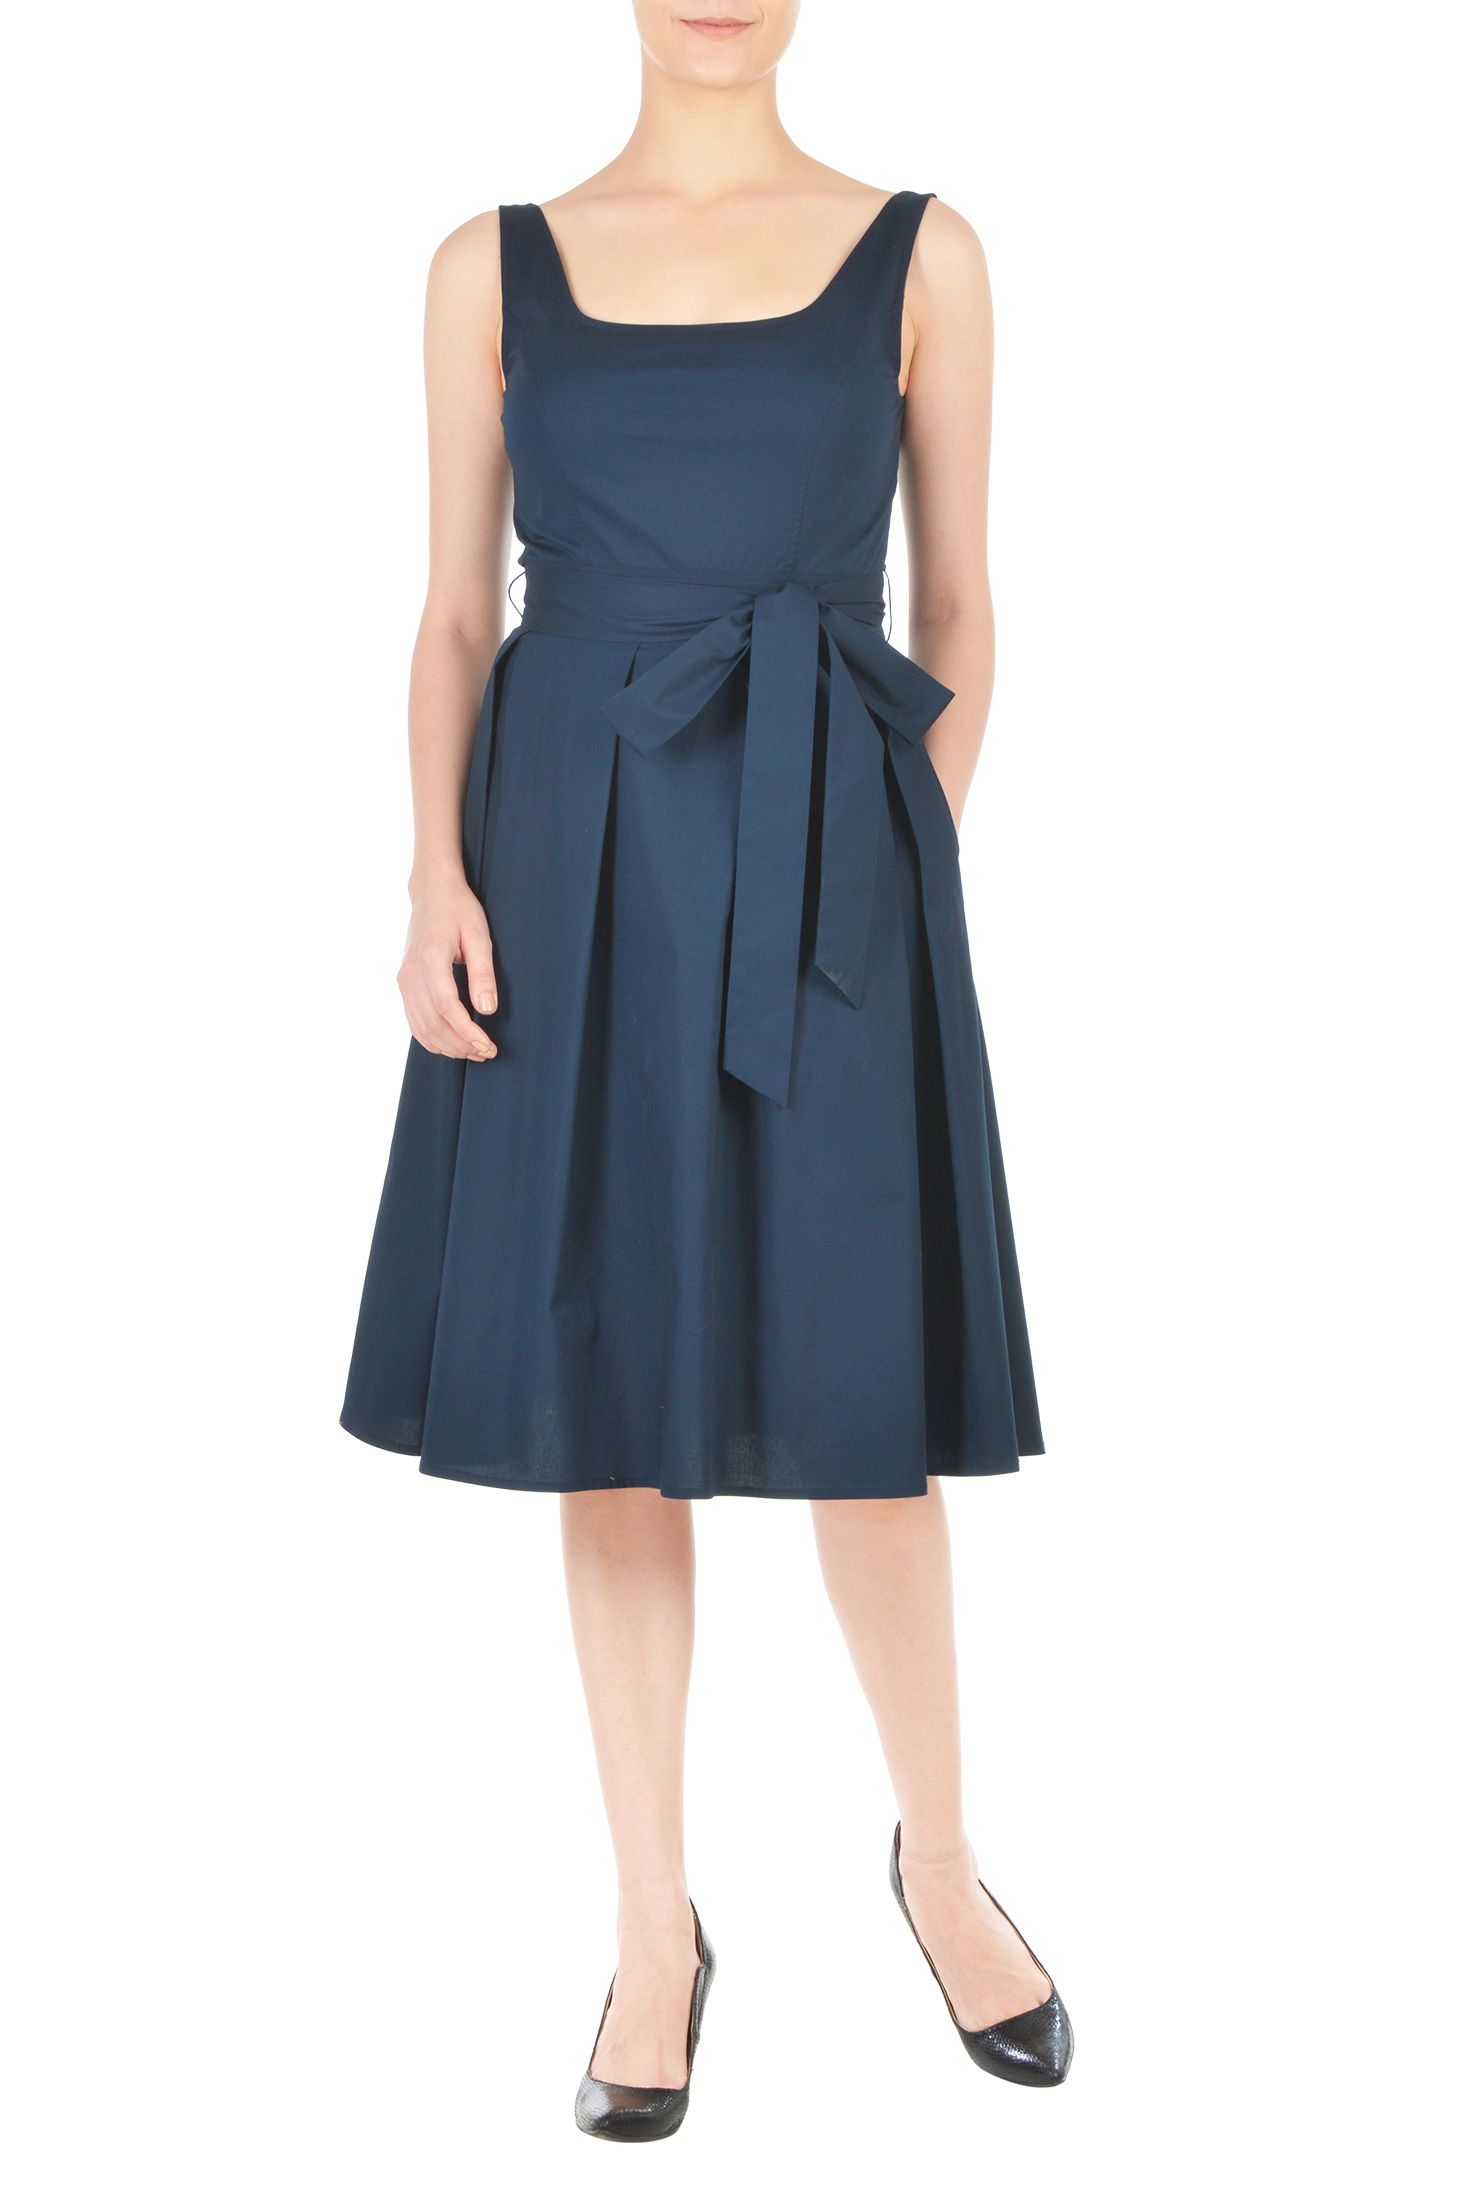 25382fc5ead2 Our stretch cotton poplin dress is cinched in with a sash tie belt at the  banded